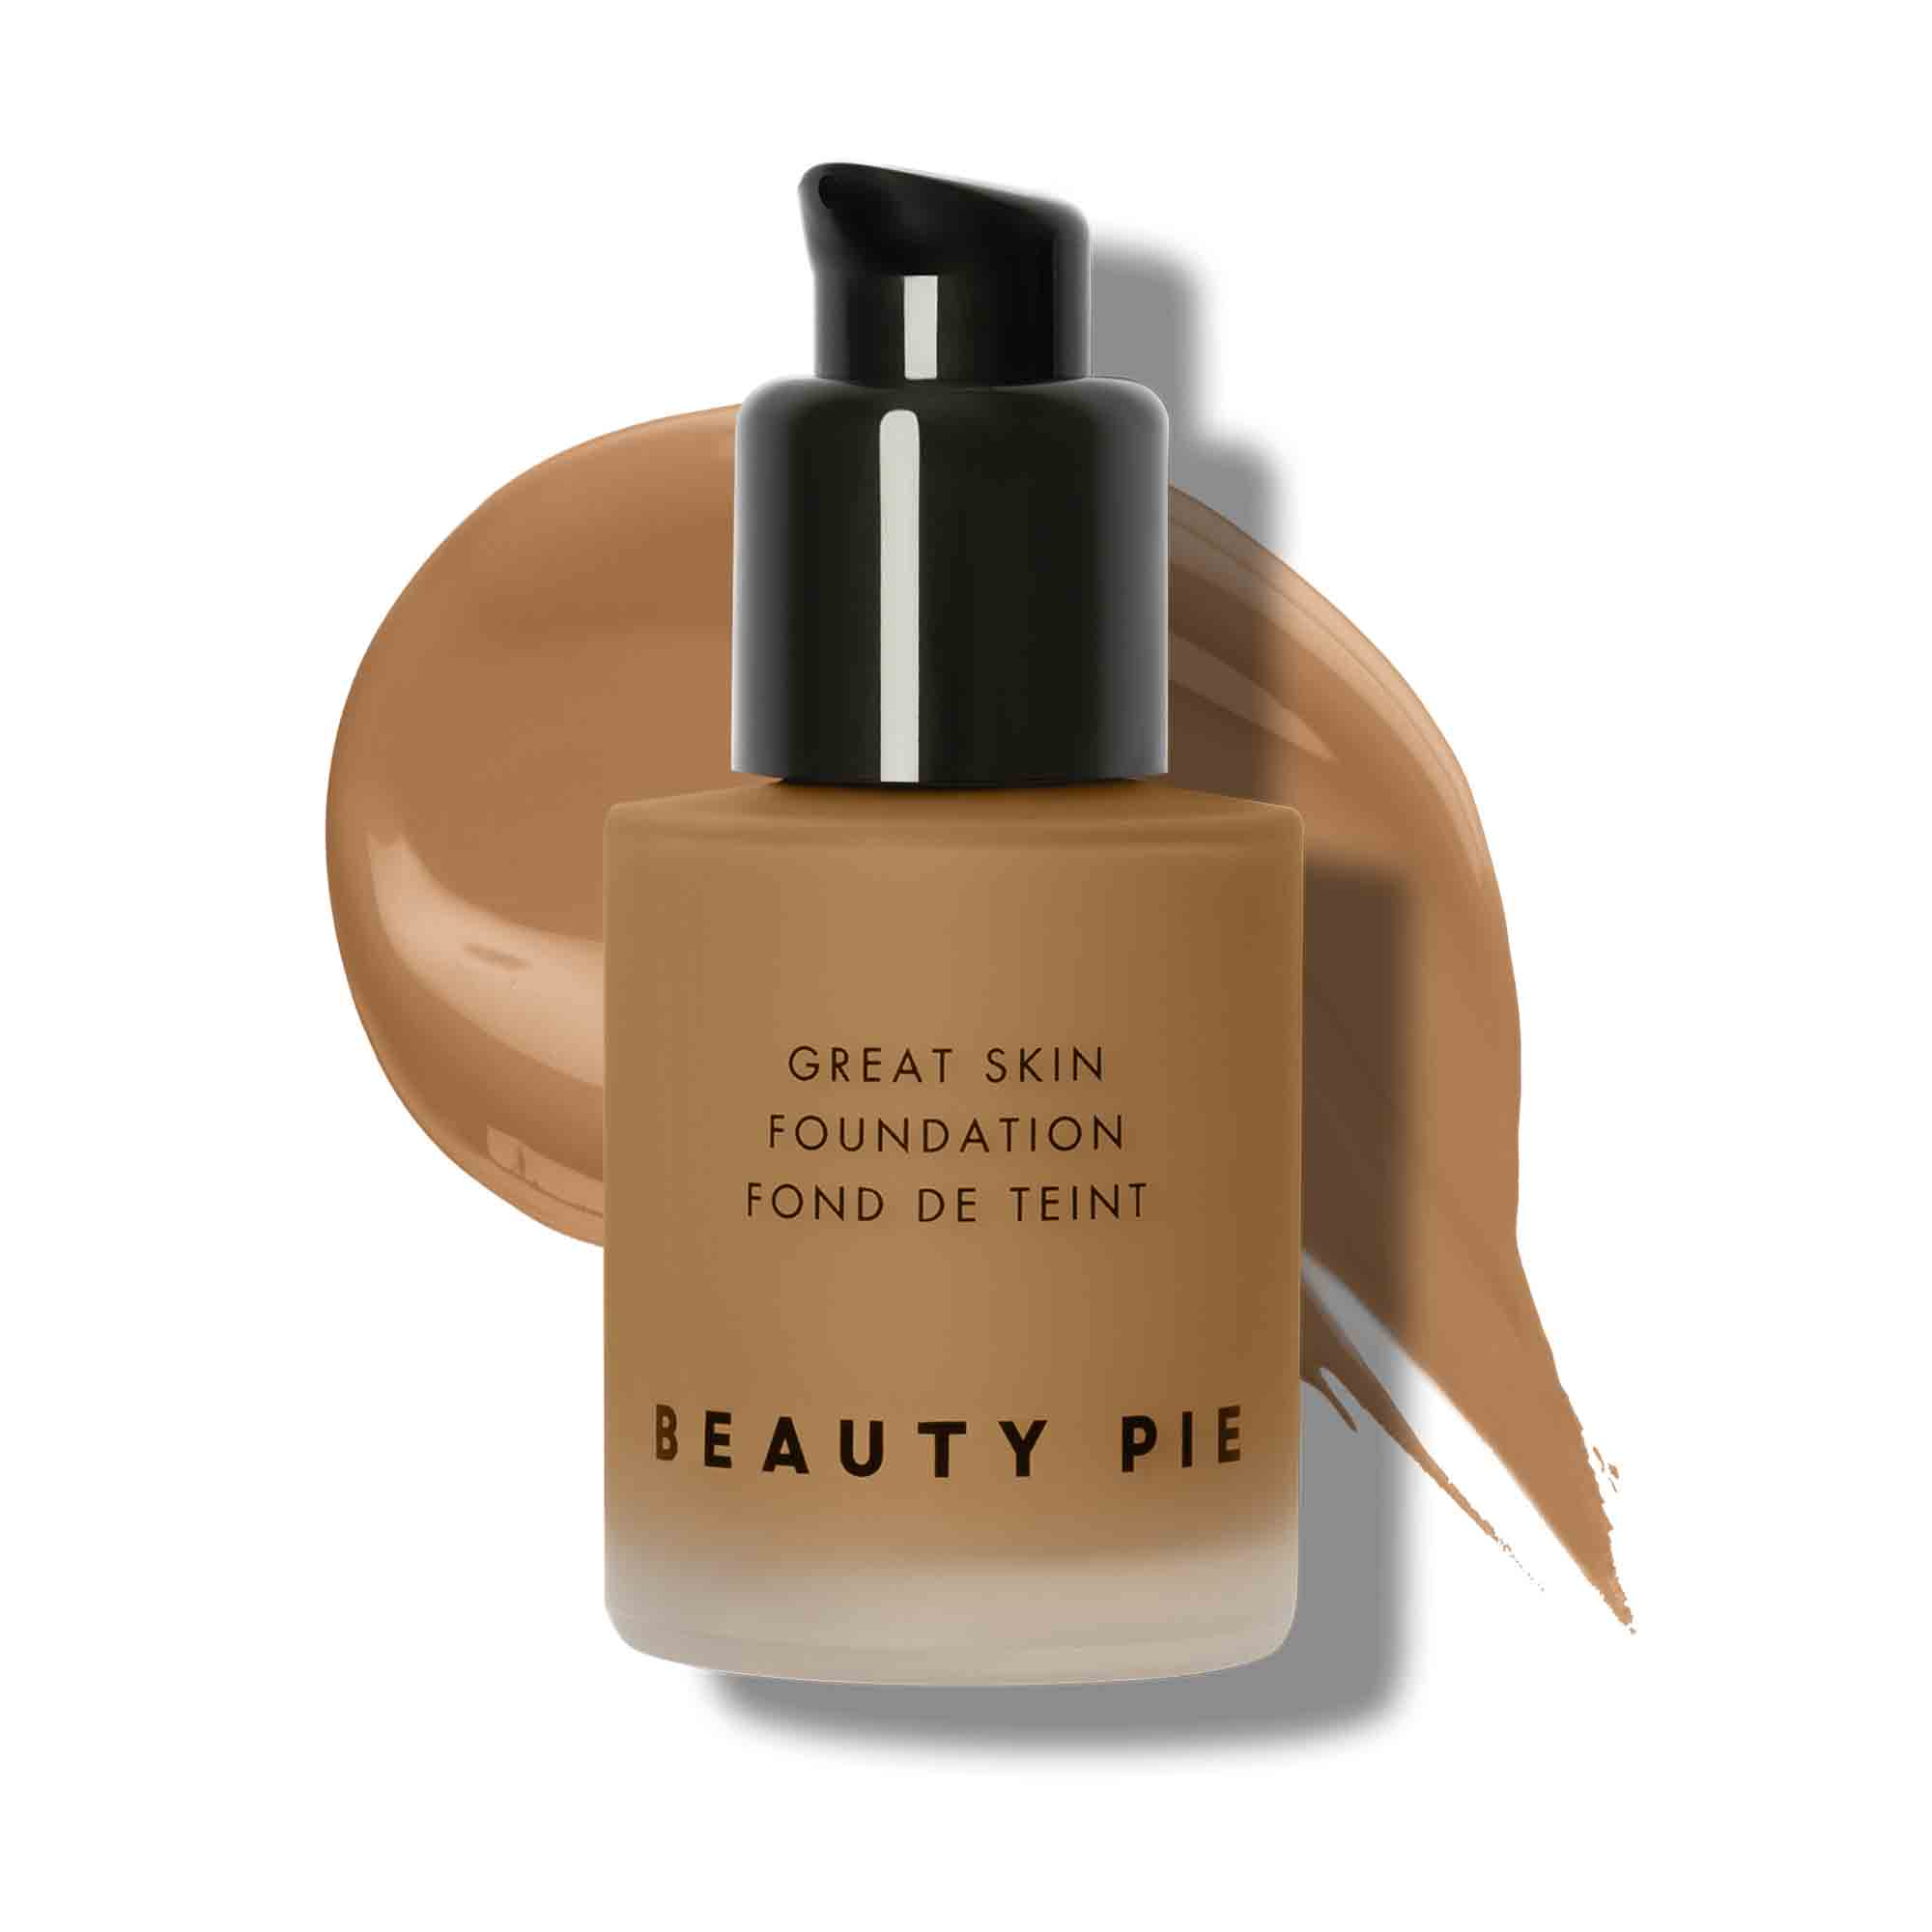 Everyday Great Skin Foundation in Caramel by Beauty Pie